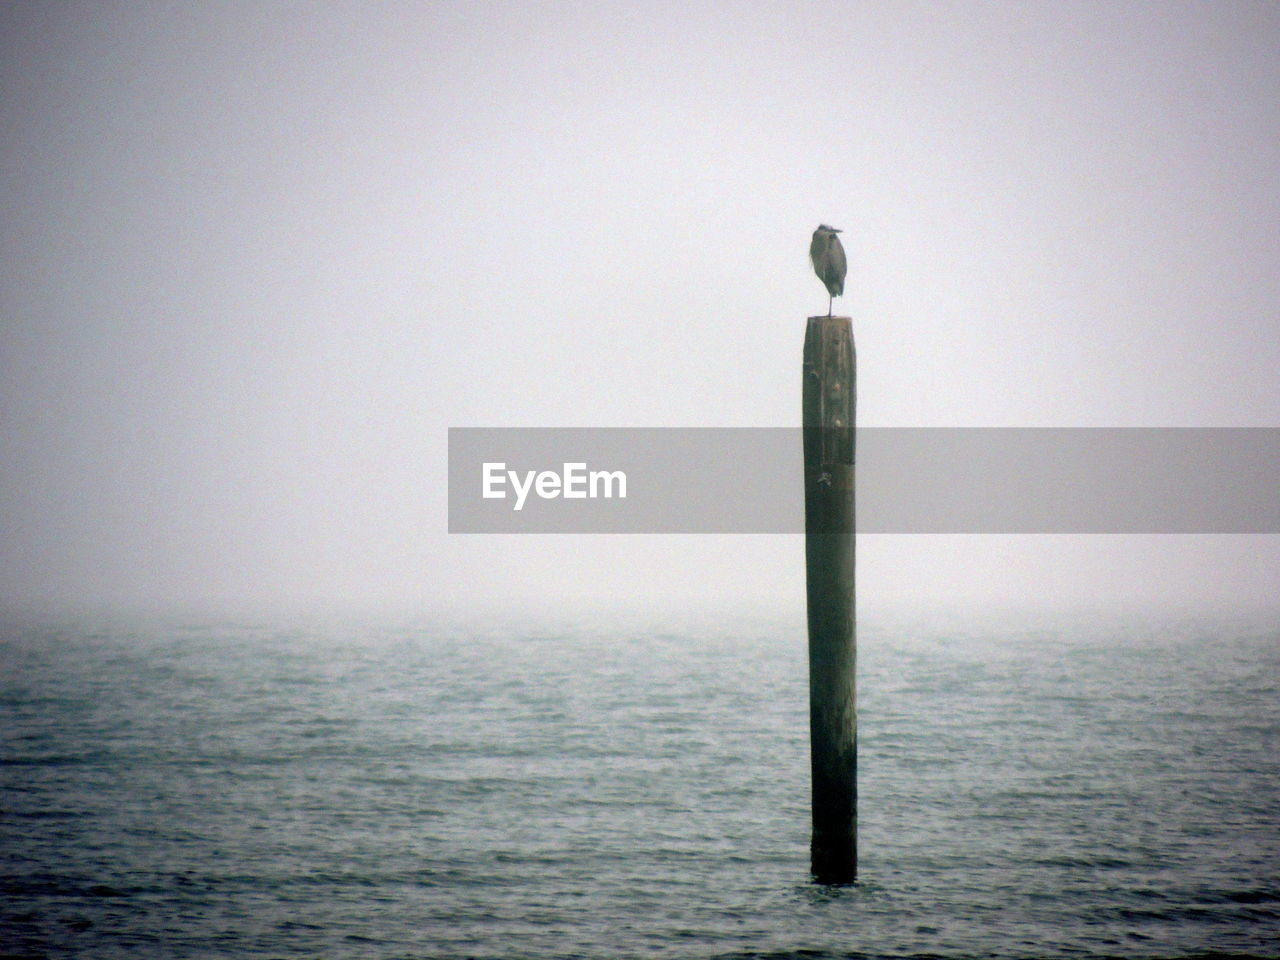 Heron perching on wooden post in sea during foggy weather